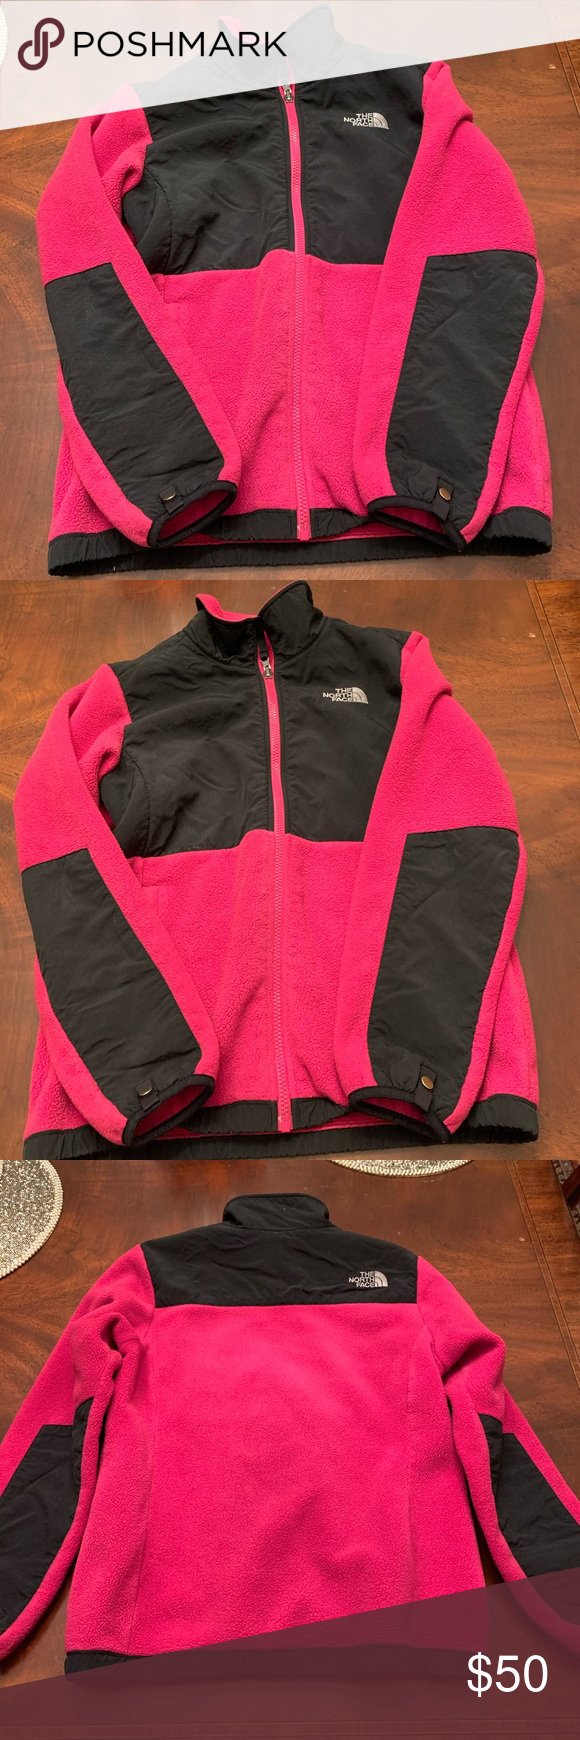 North Face Jacket Selling North Face Pink Black Jacket This Jacket Is In Good Condition Showing Small North Face Jacket Girls North Face Jacket Black Jacket [ 1740 x 580 Pixel ]